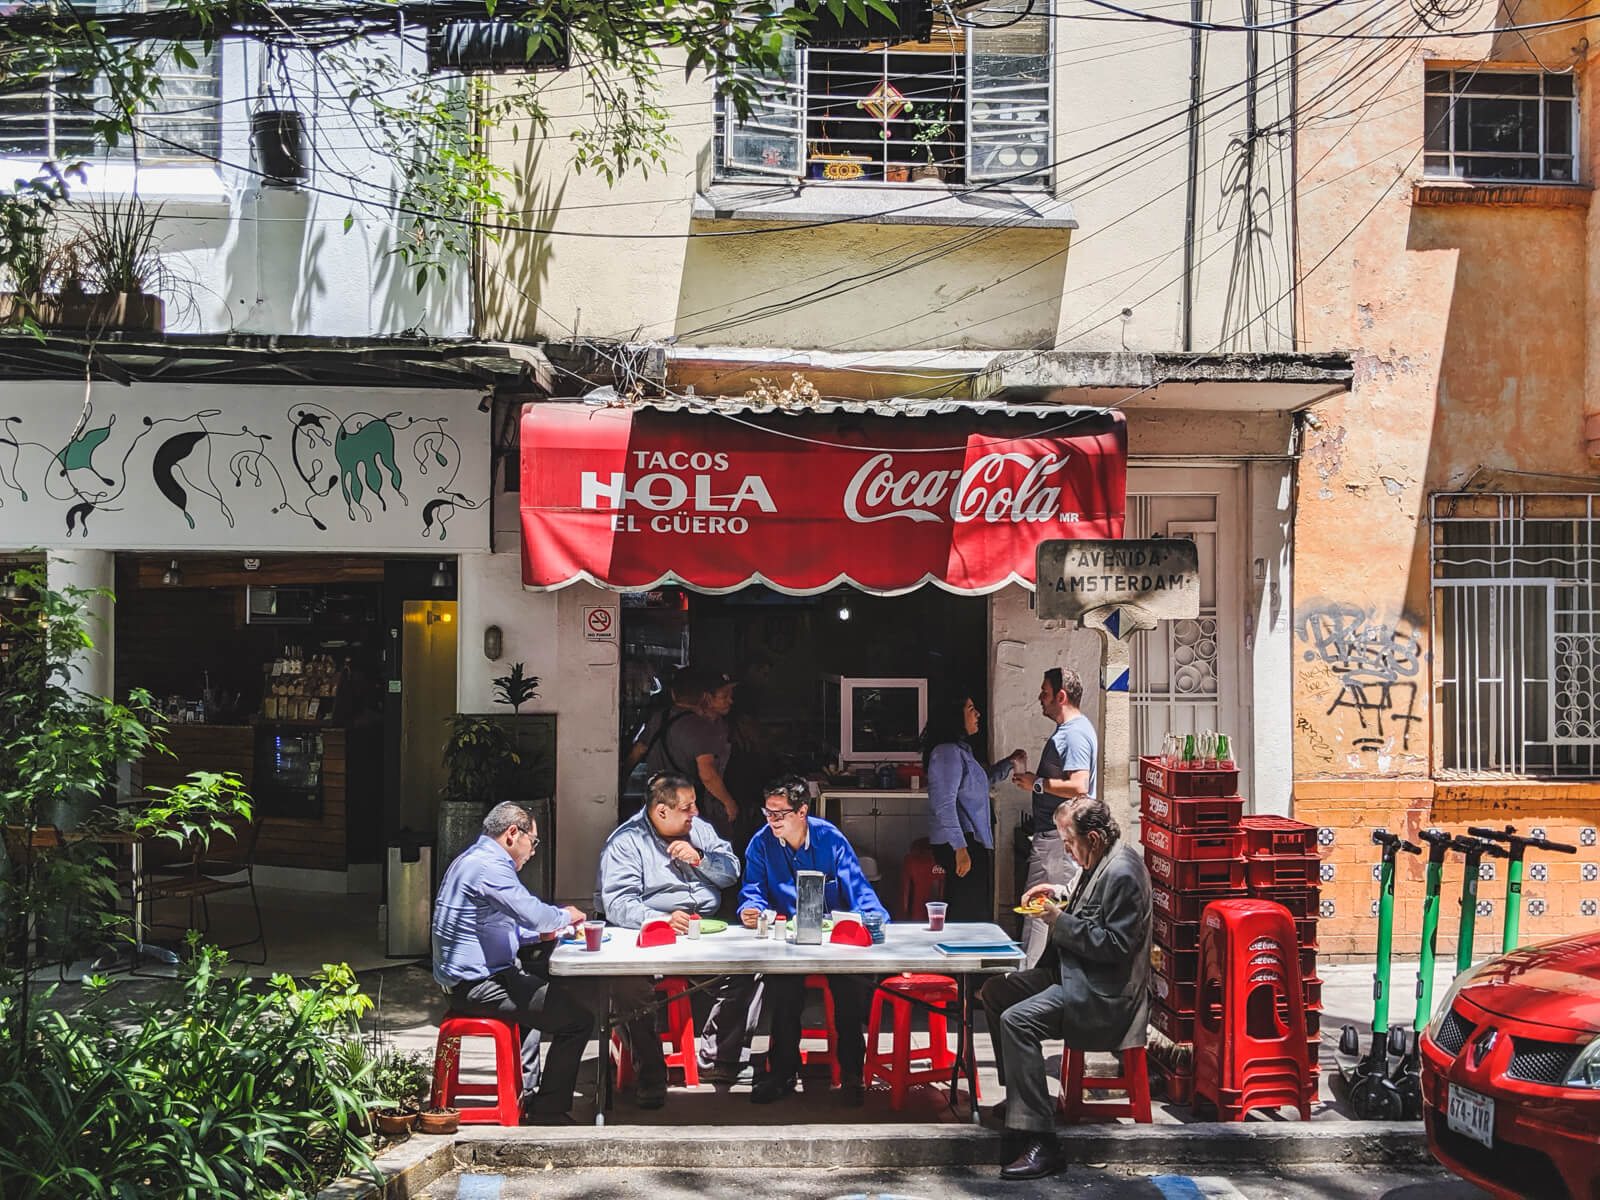 Four men sit around a table in front of a taqueria in Mexico City